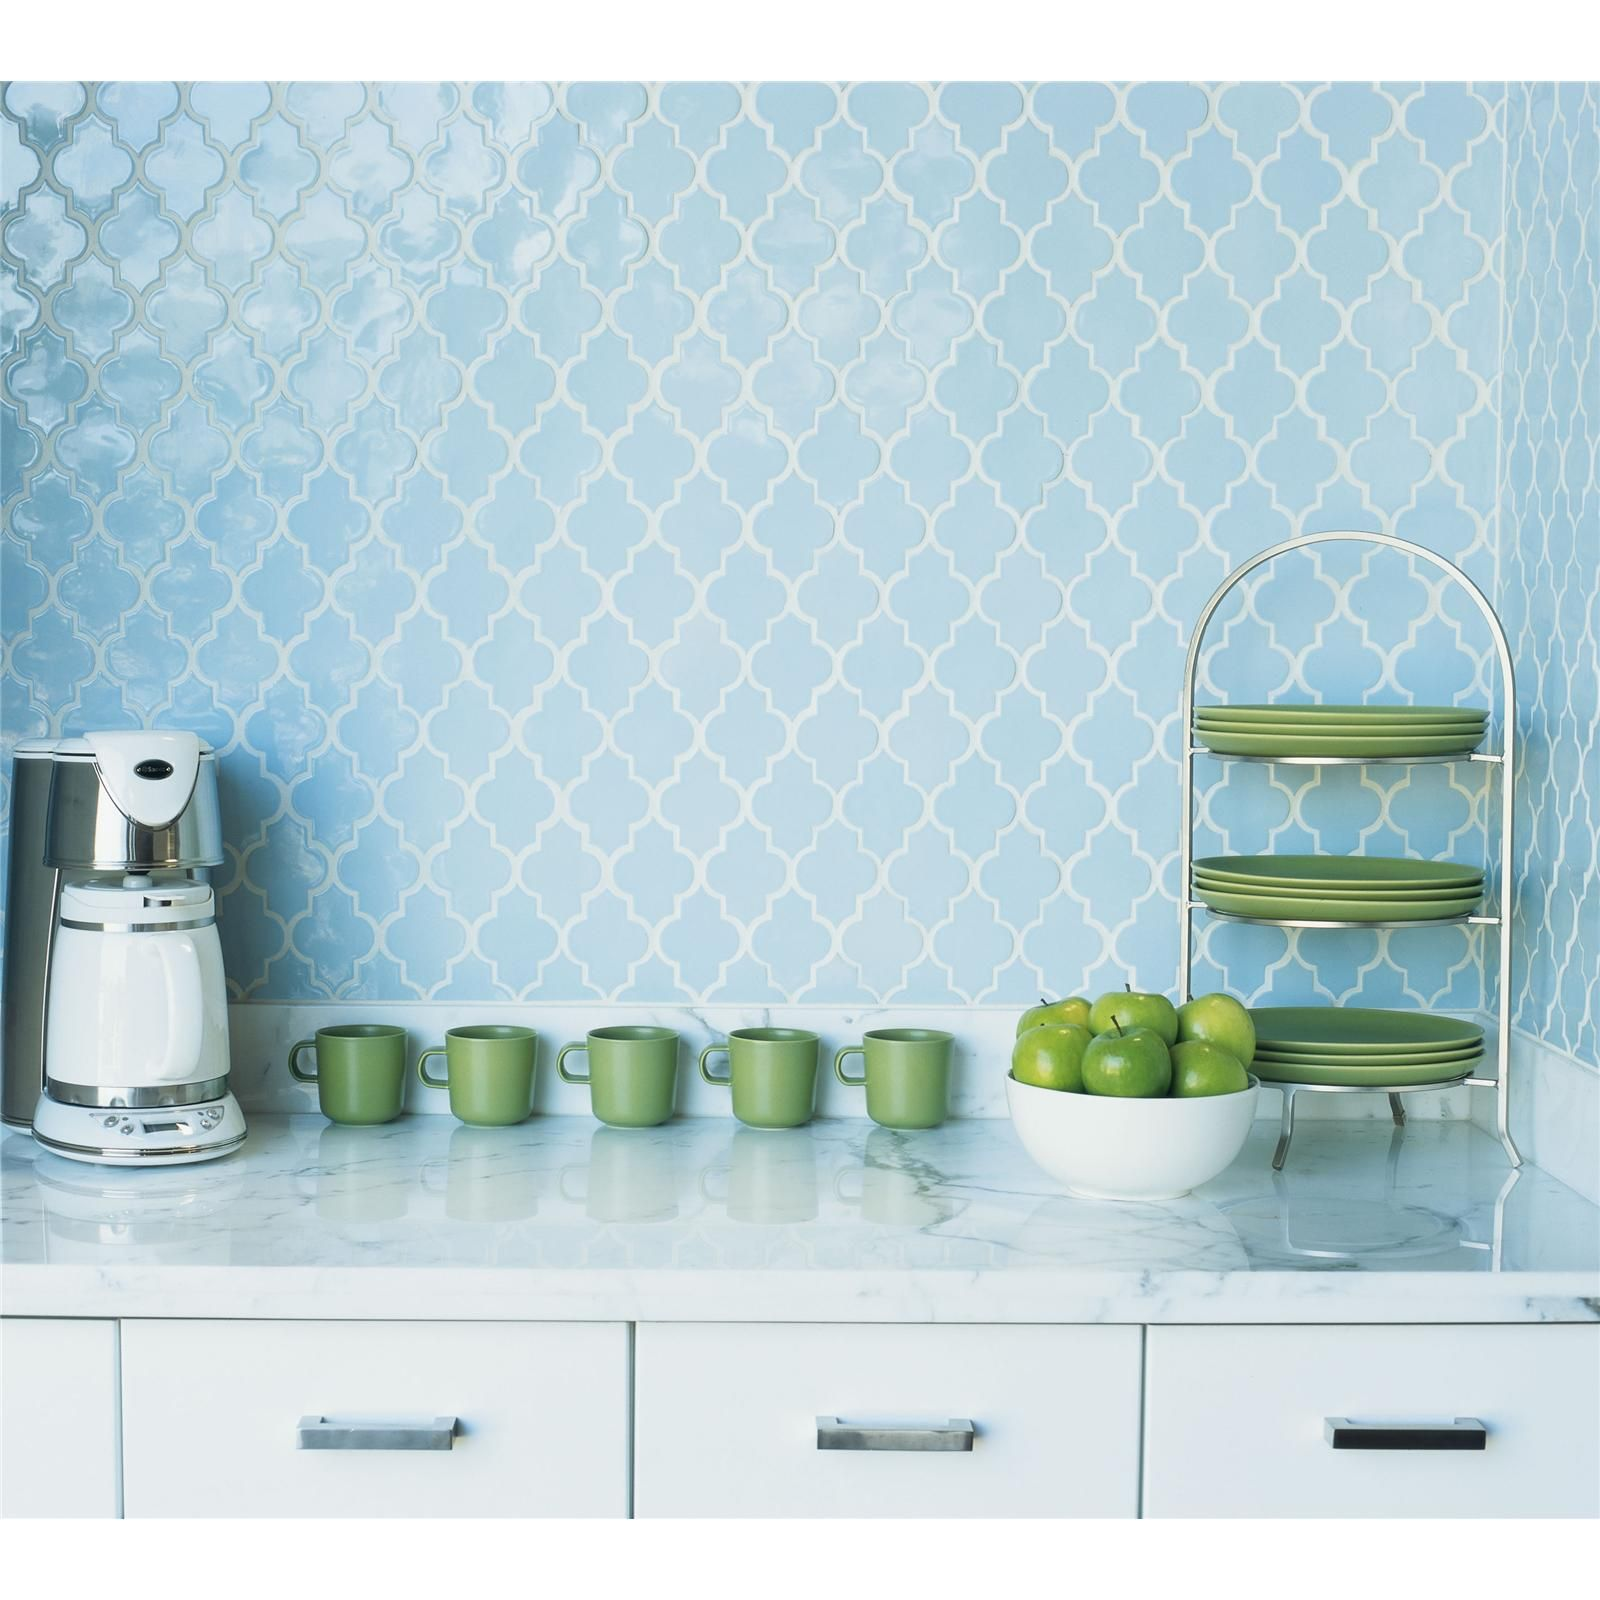 Colors for a bright kitchen, egg blue tiles, apple green accents ...